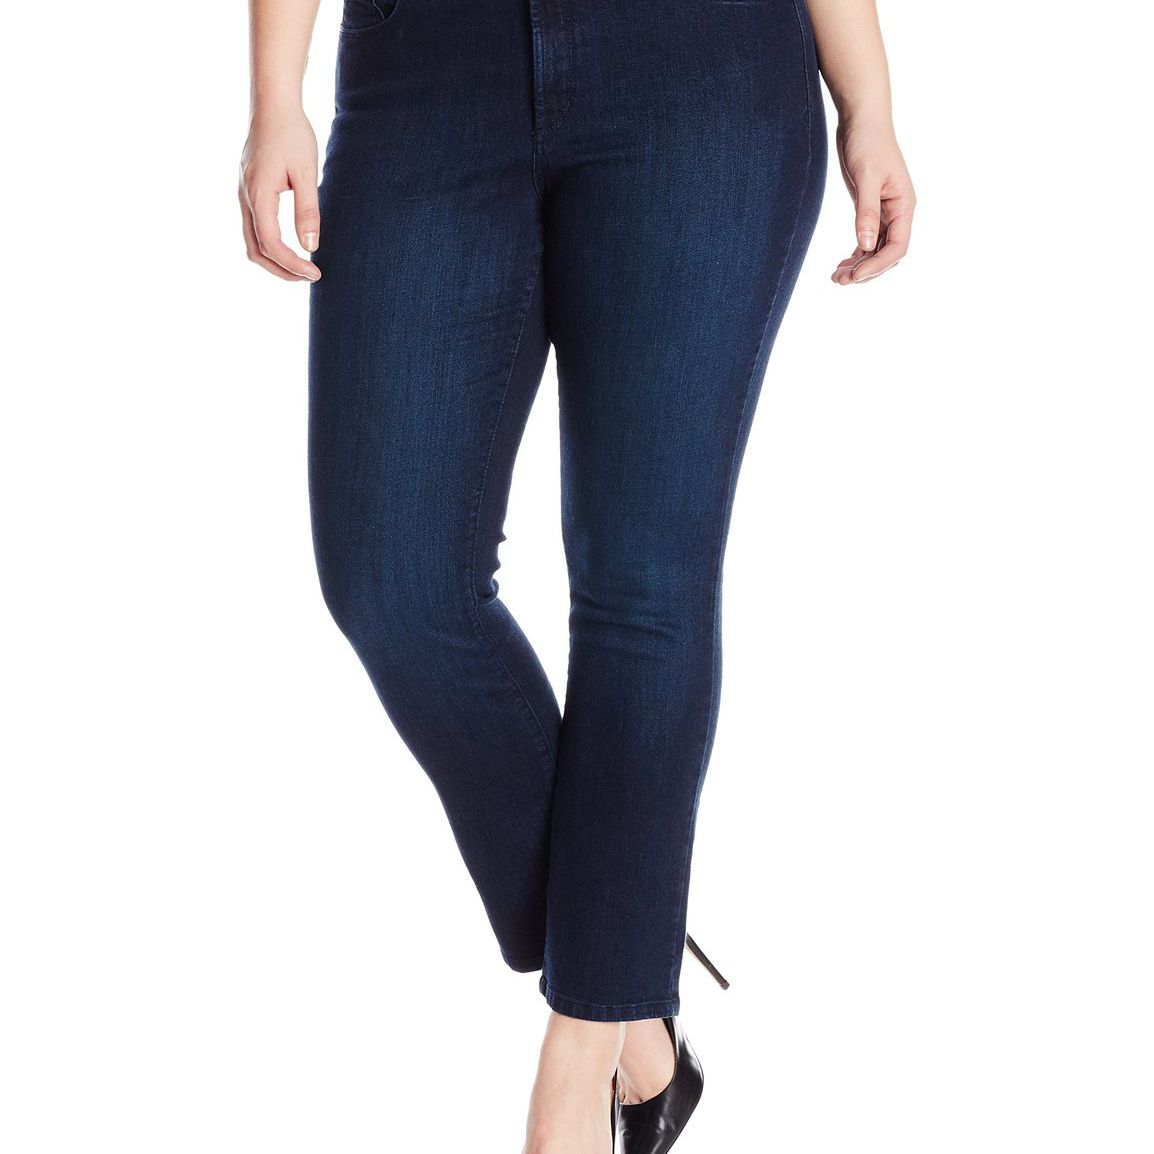 1de7cd260 How to Wear Skinny Jeans if You're Plus Size